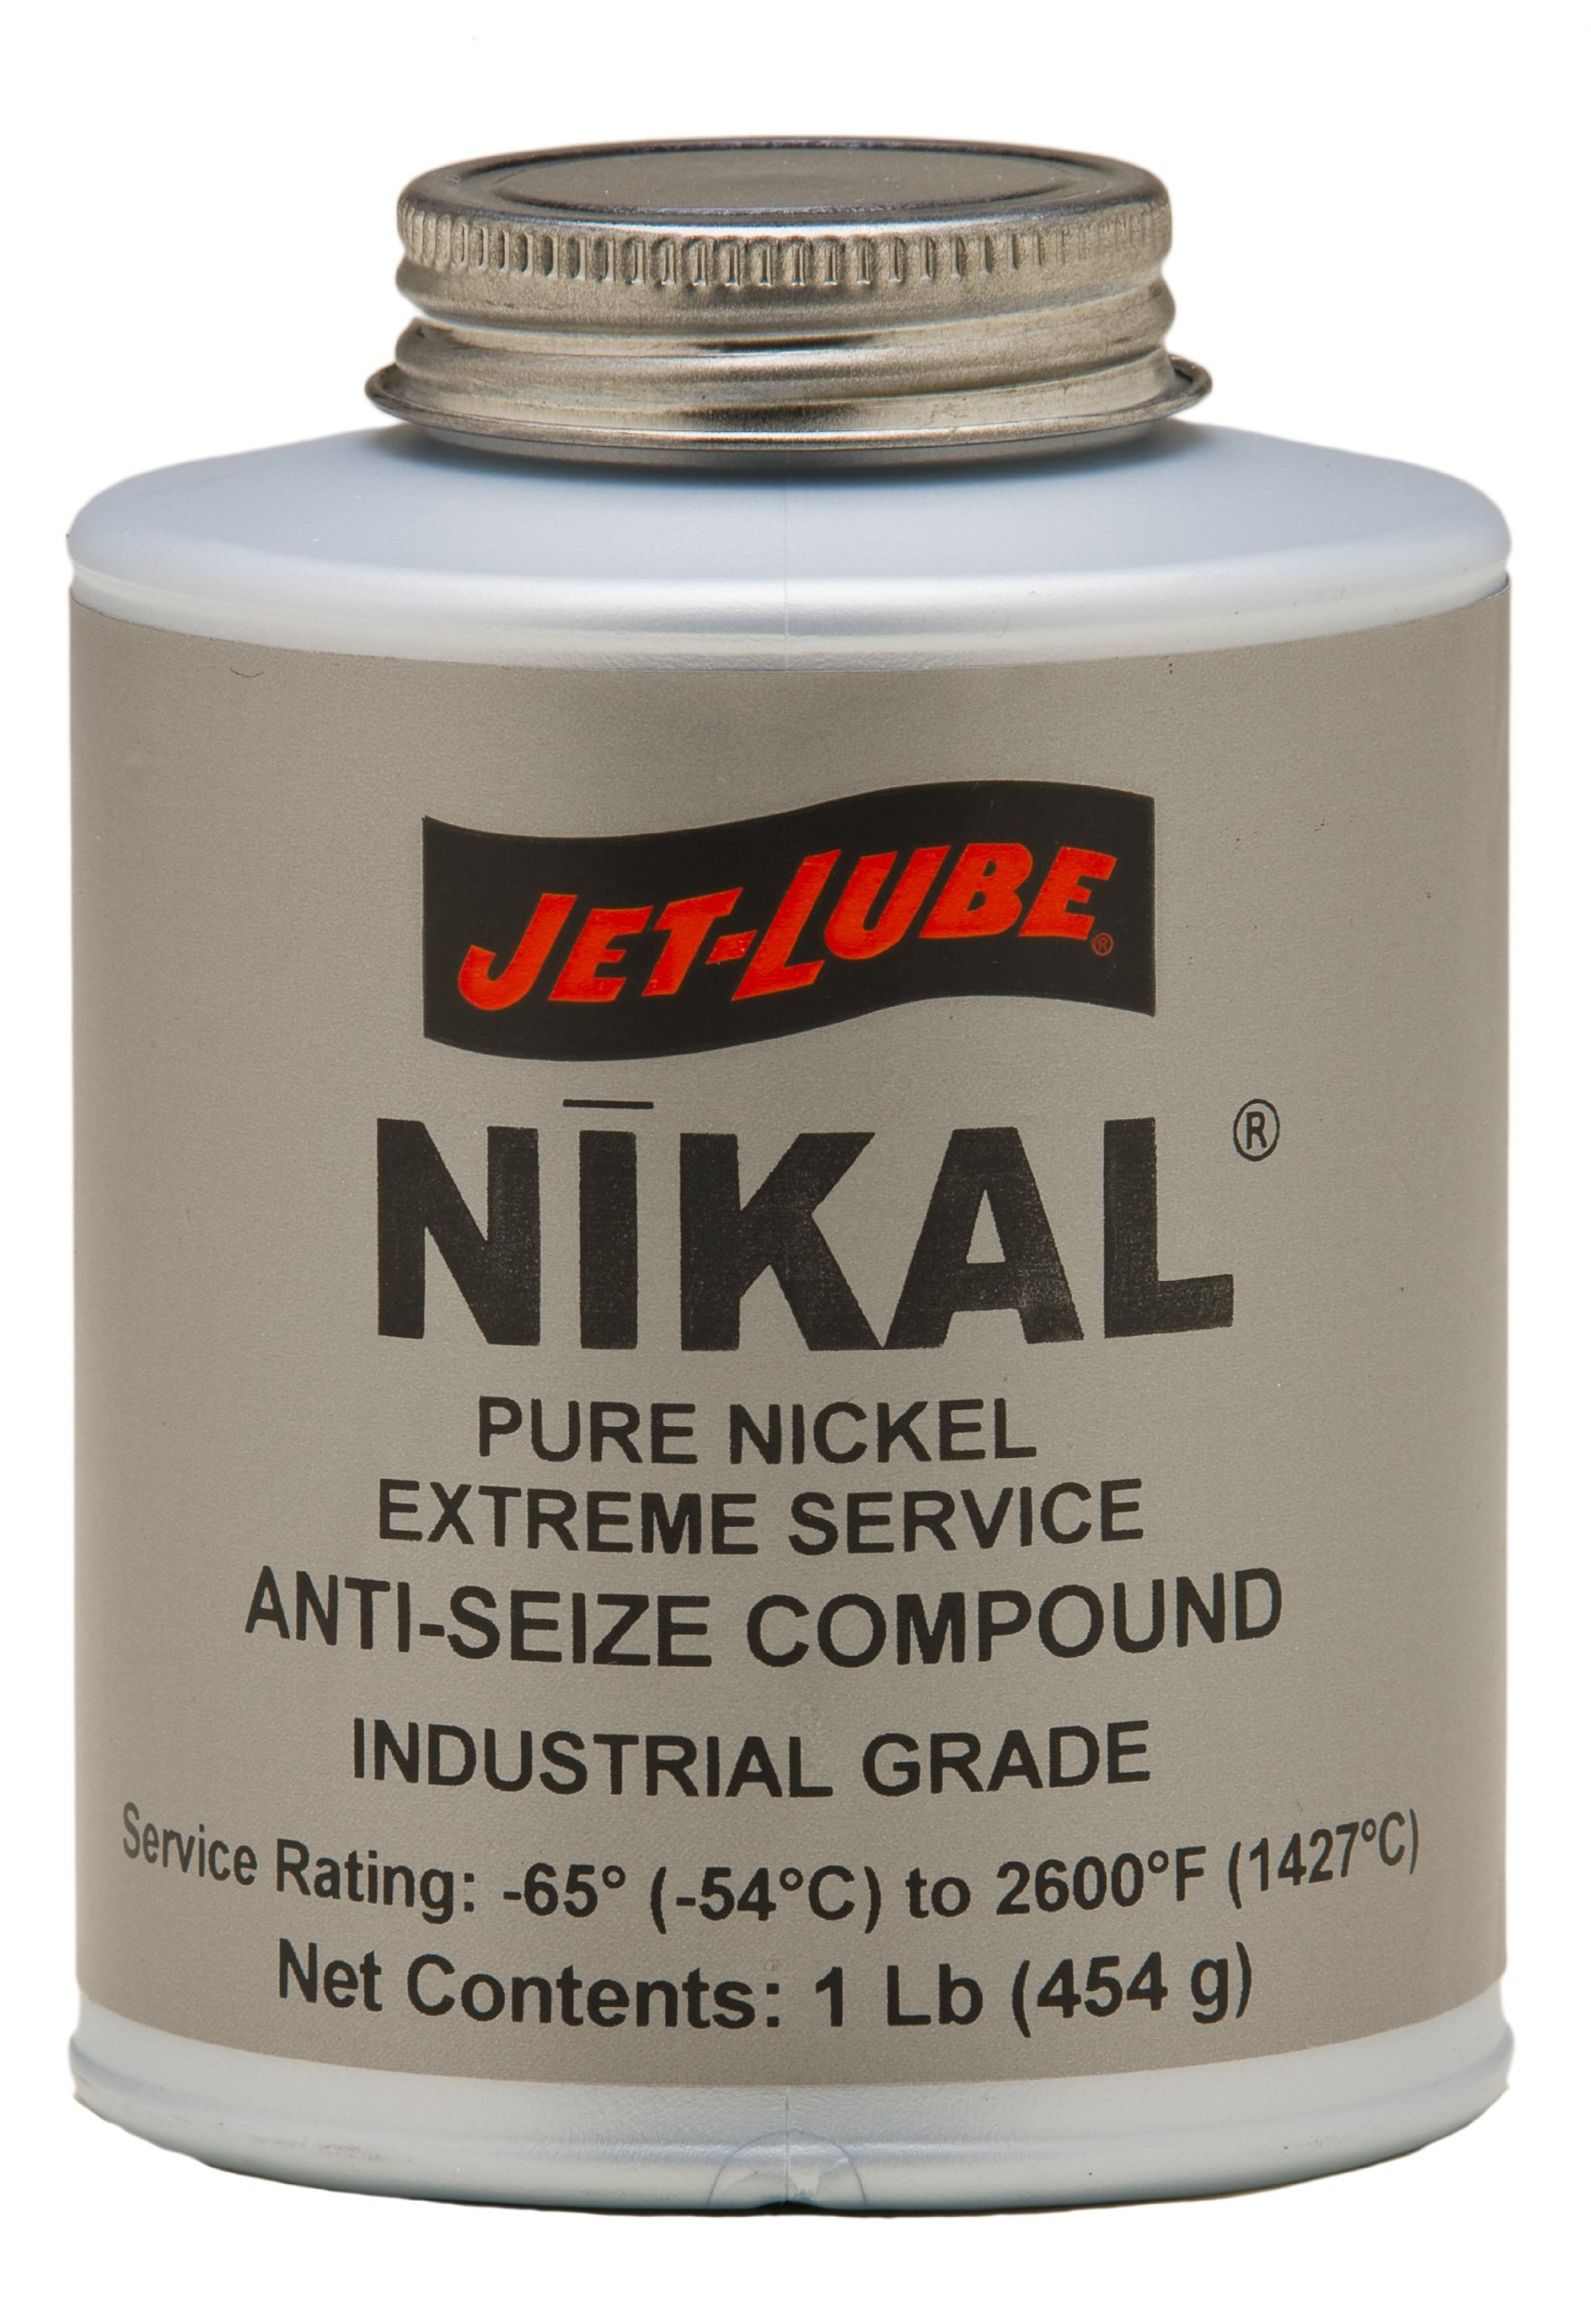 Jet-Lube Pure Nickel Extreme Anti-Seize and Thread Lubricant, 1/4 lbs Brush Top Can by Jet-Lube